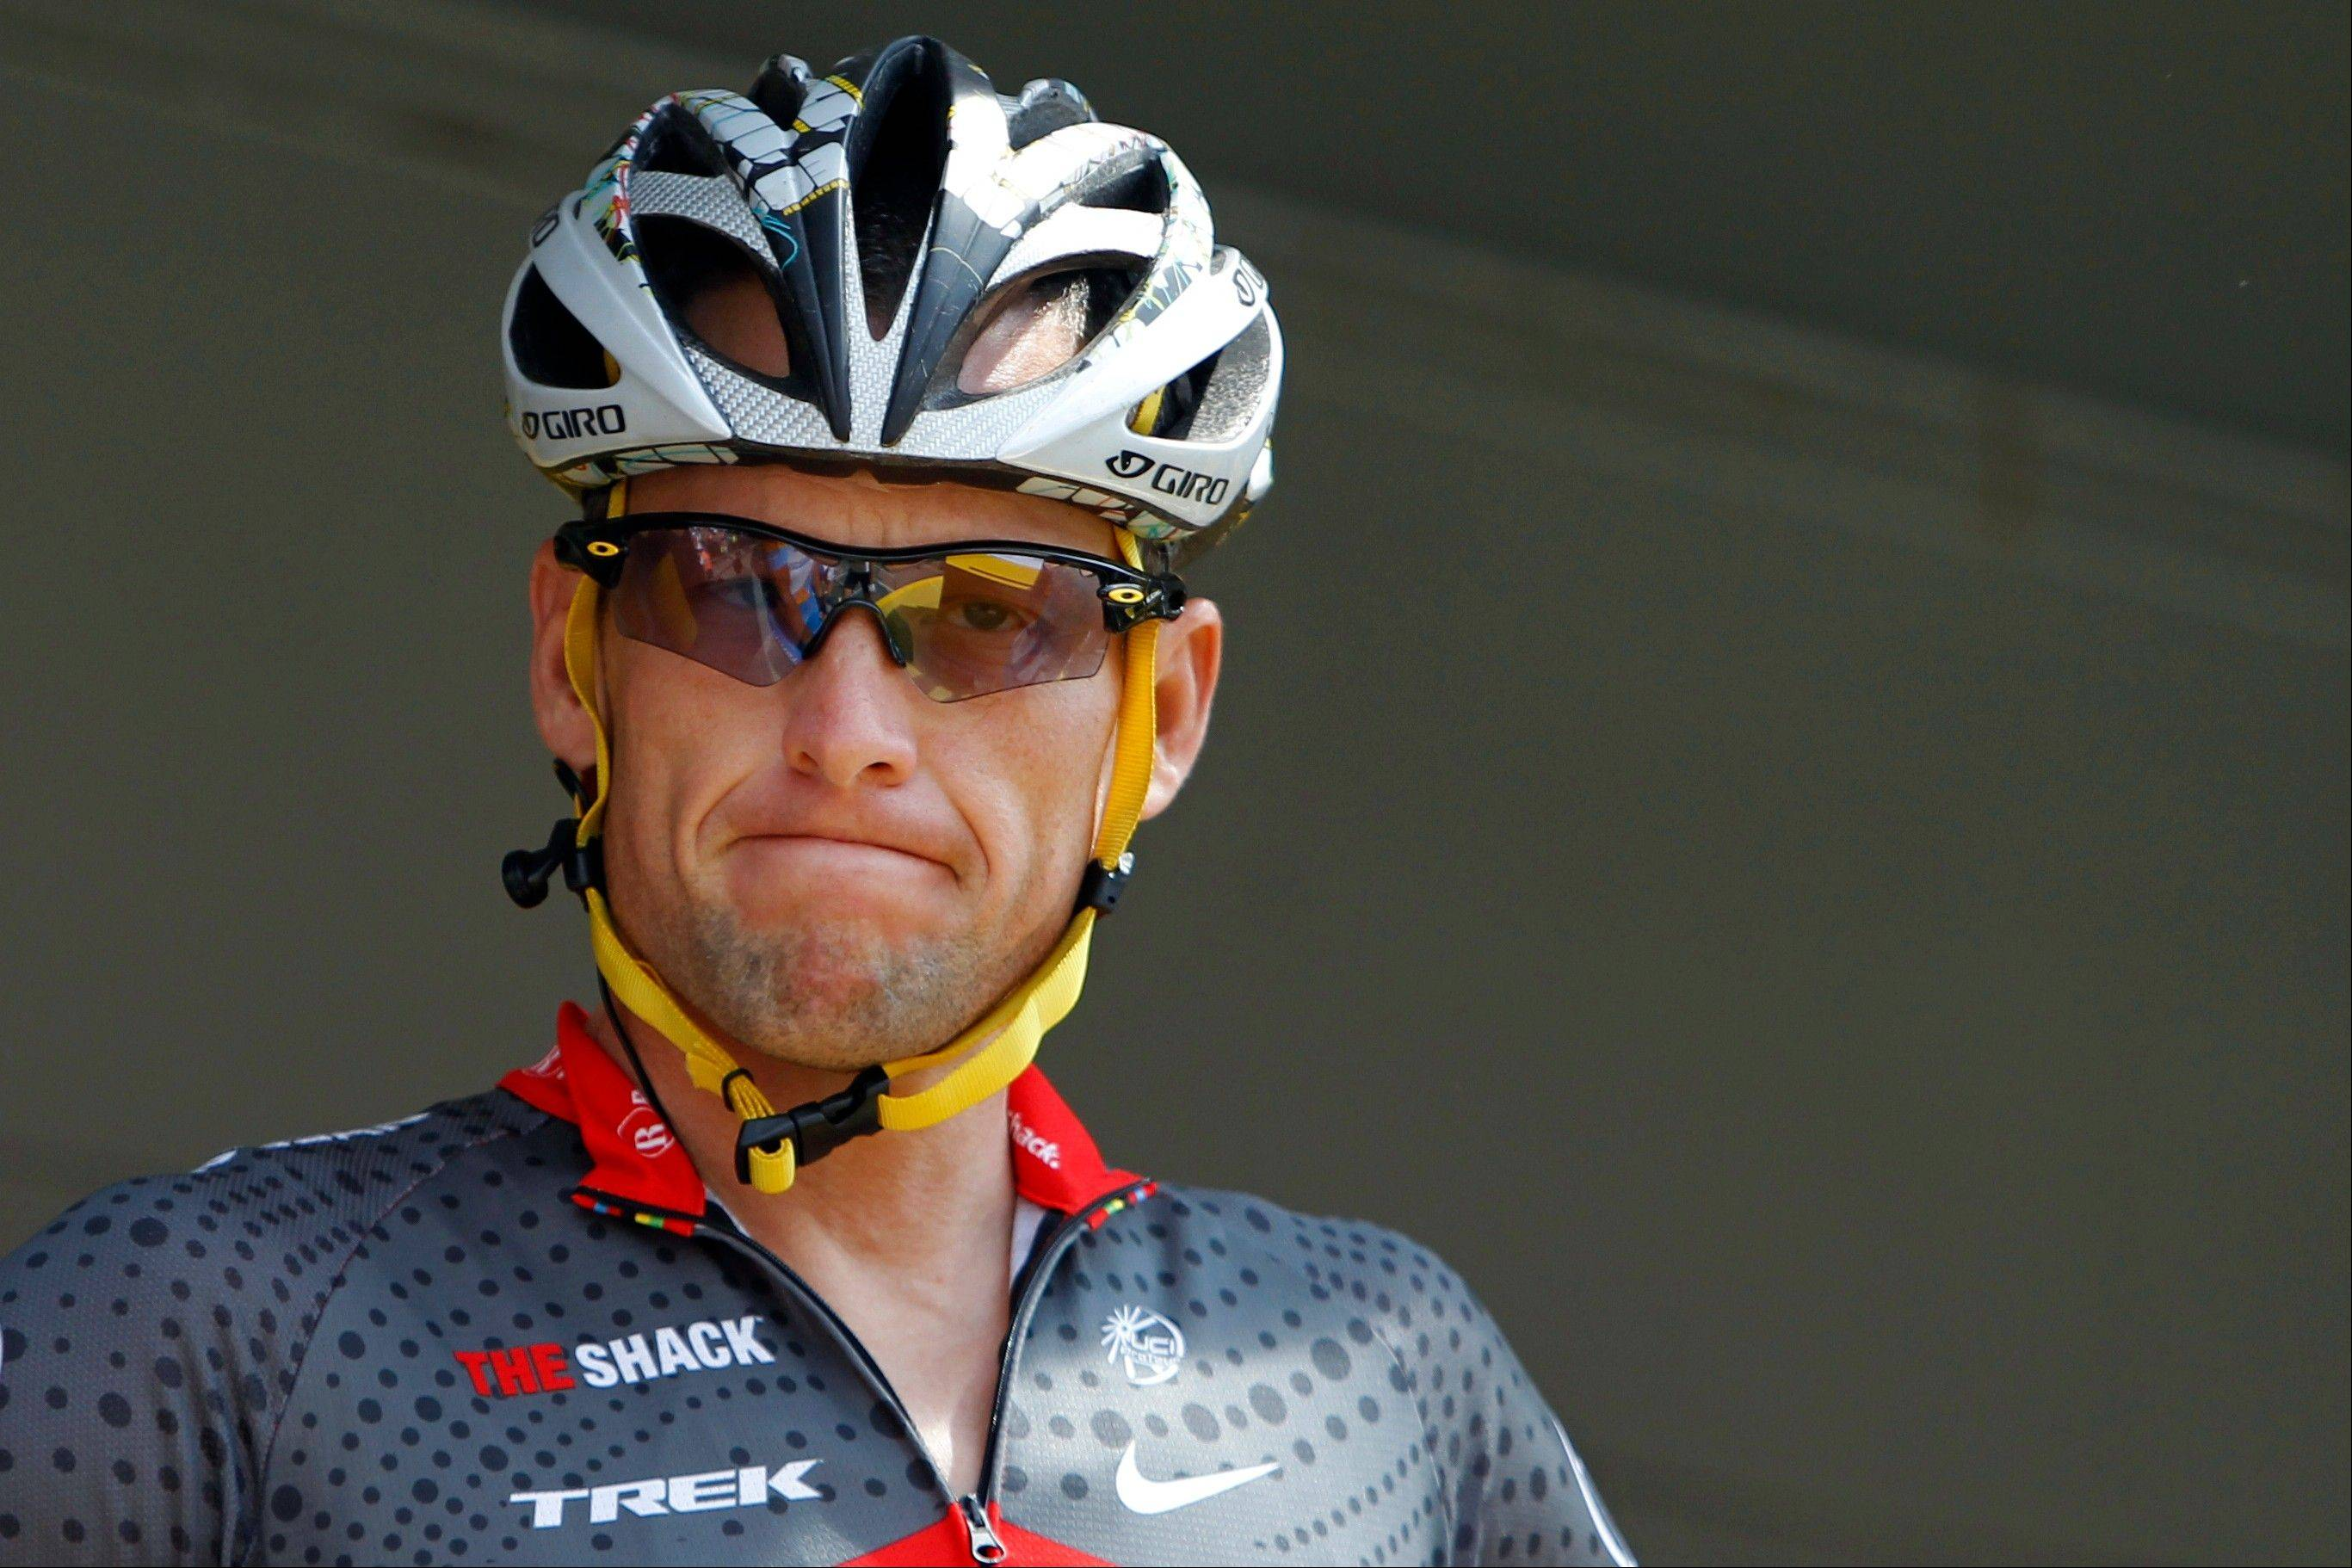 Images: Lance Armstrong in recent years